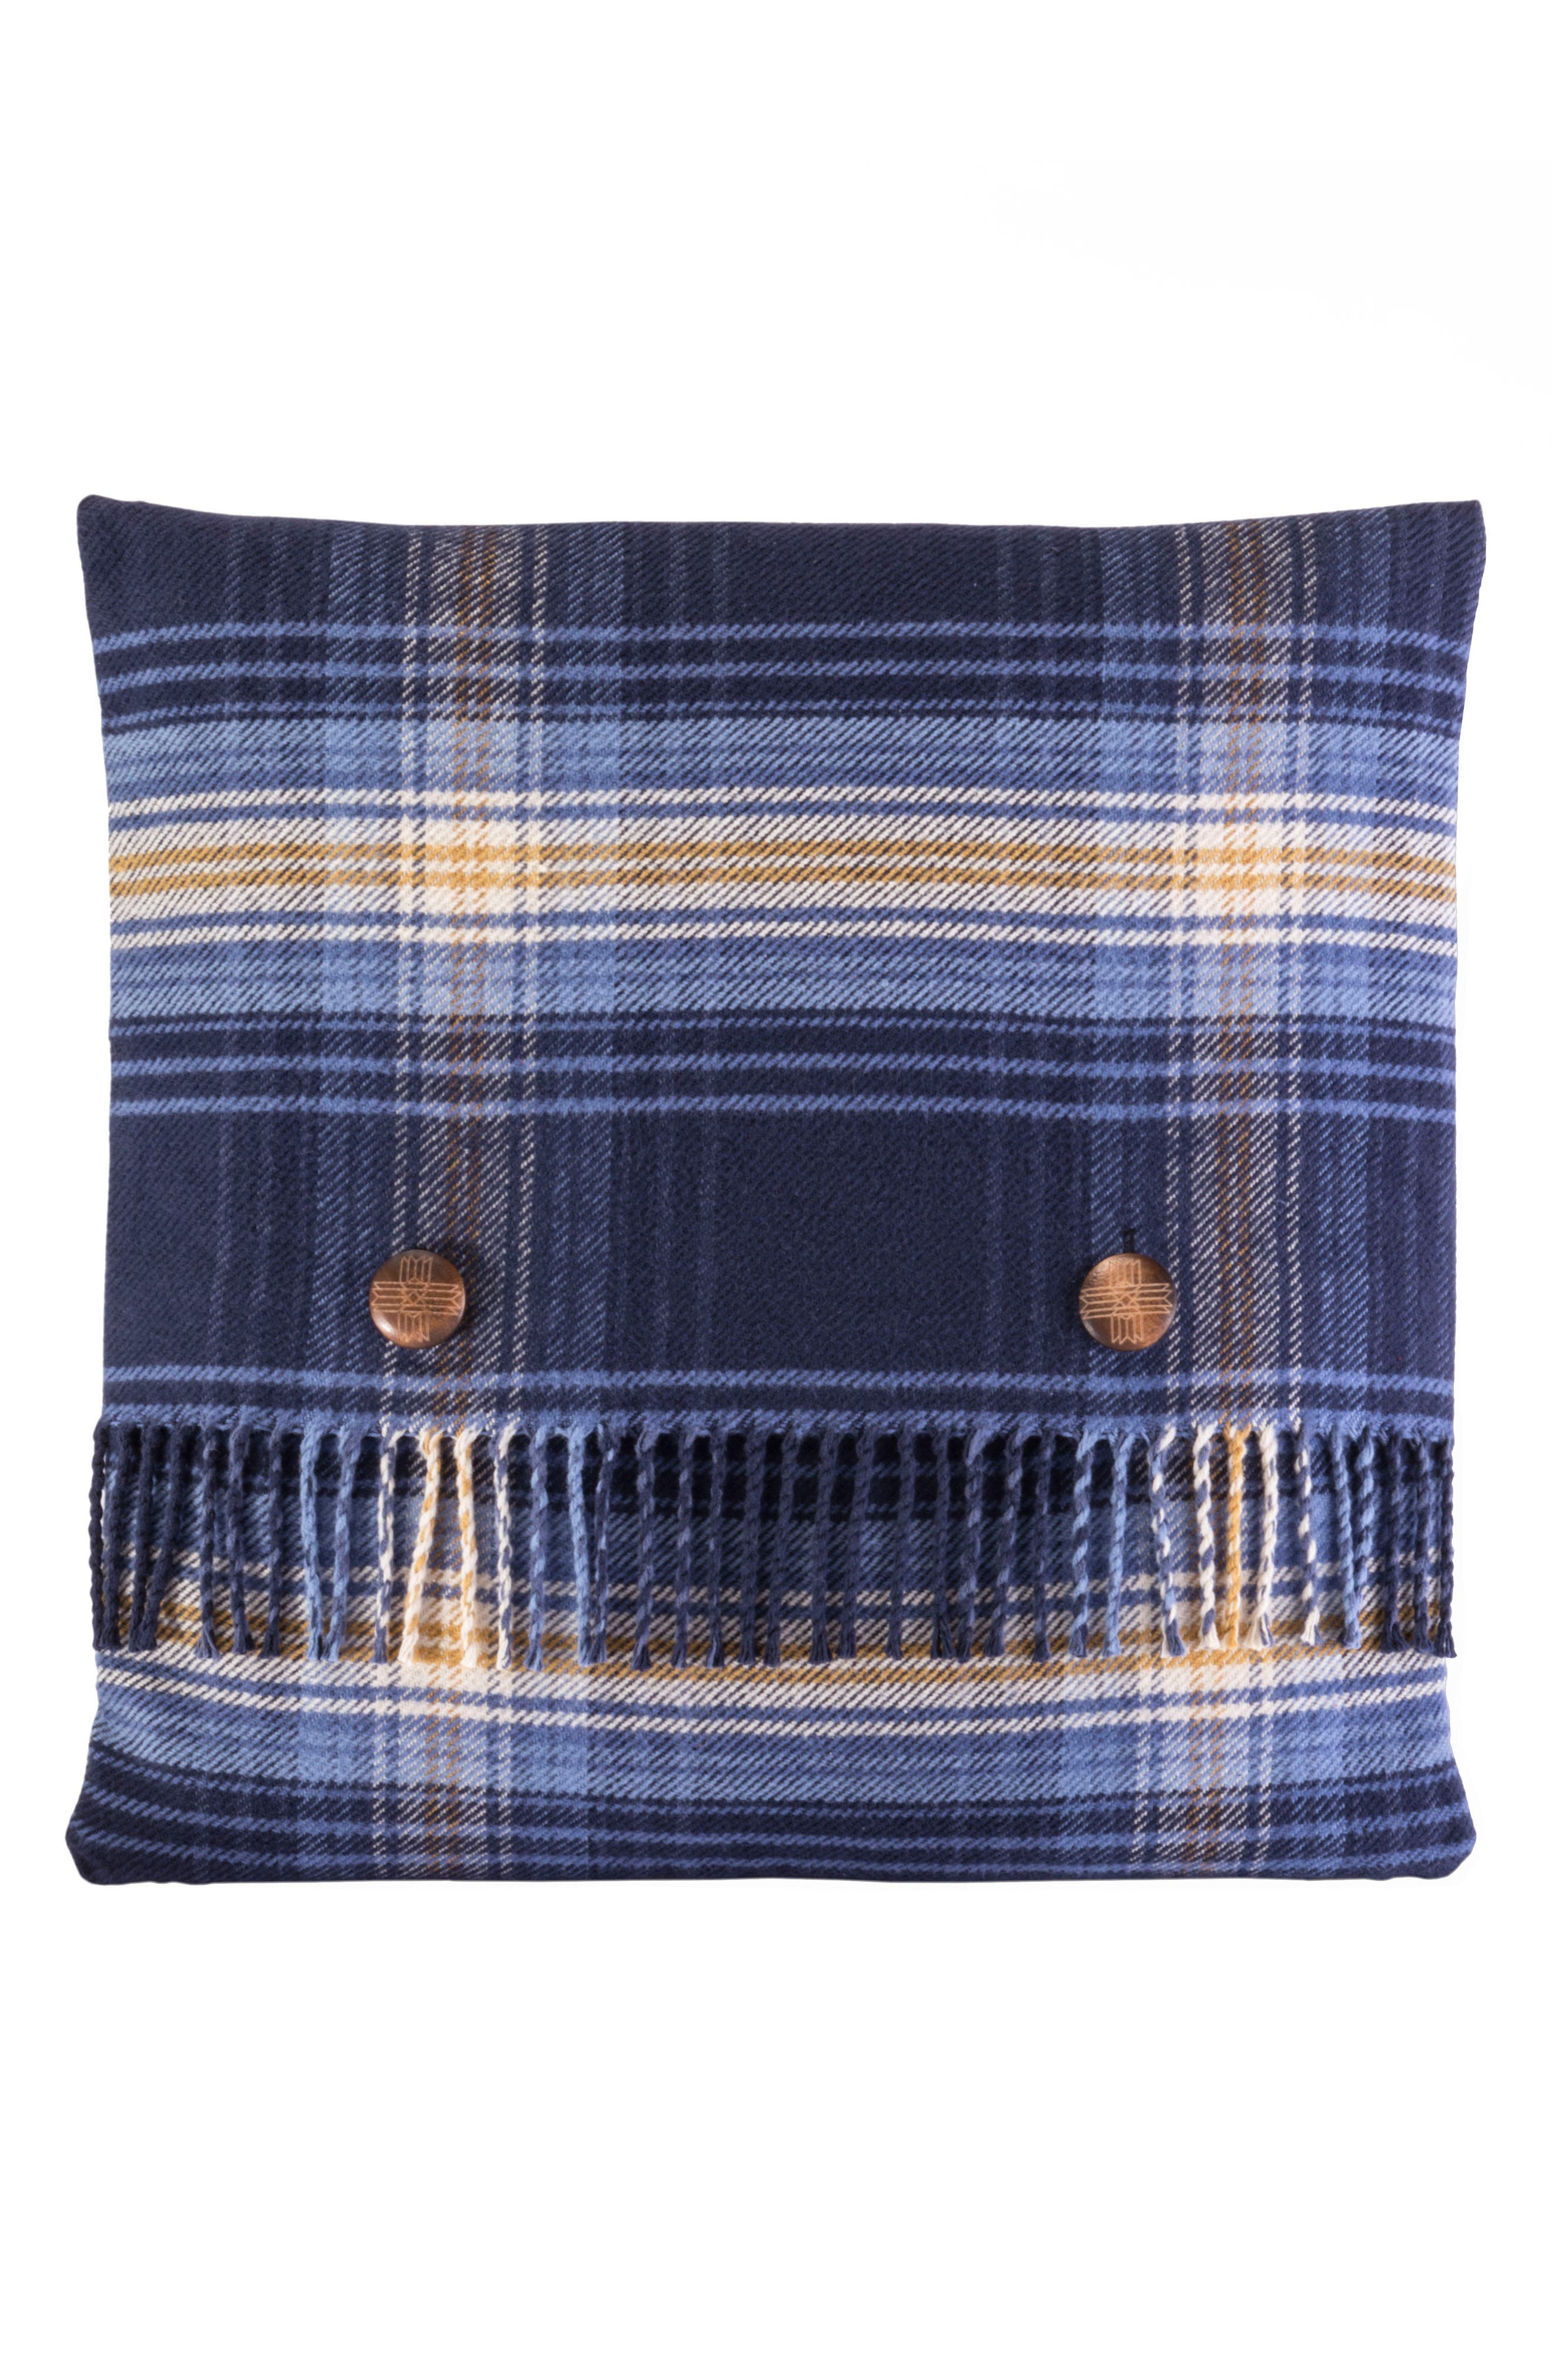 Alternate Image 1 Selected - Pendleton Ombre Plaid Pillow